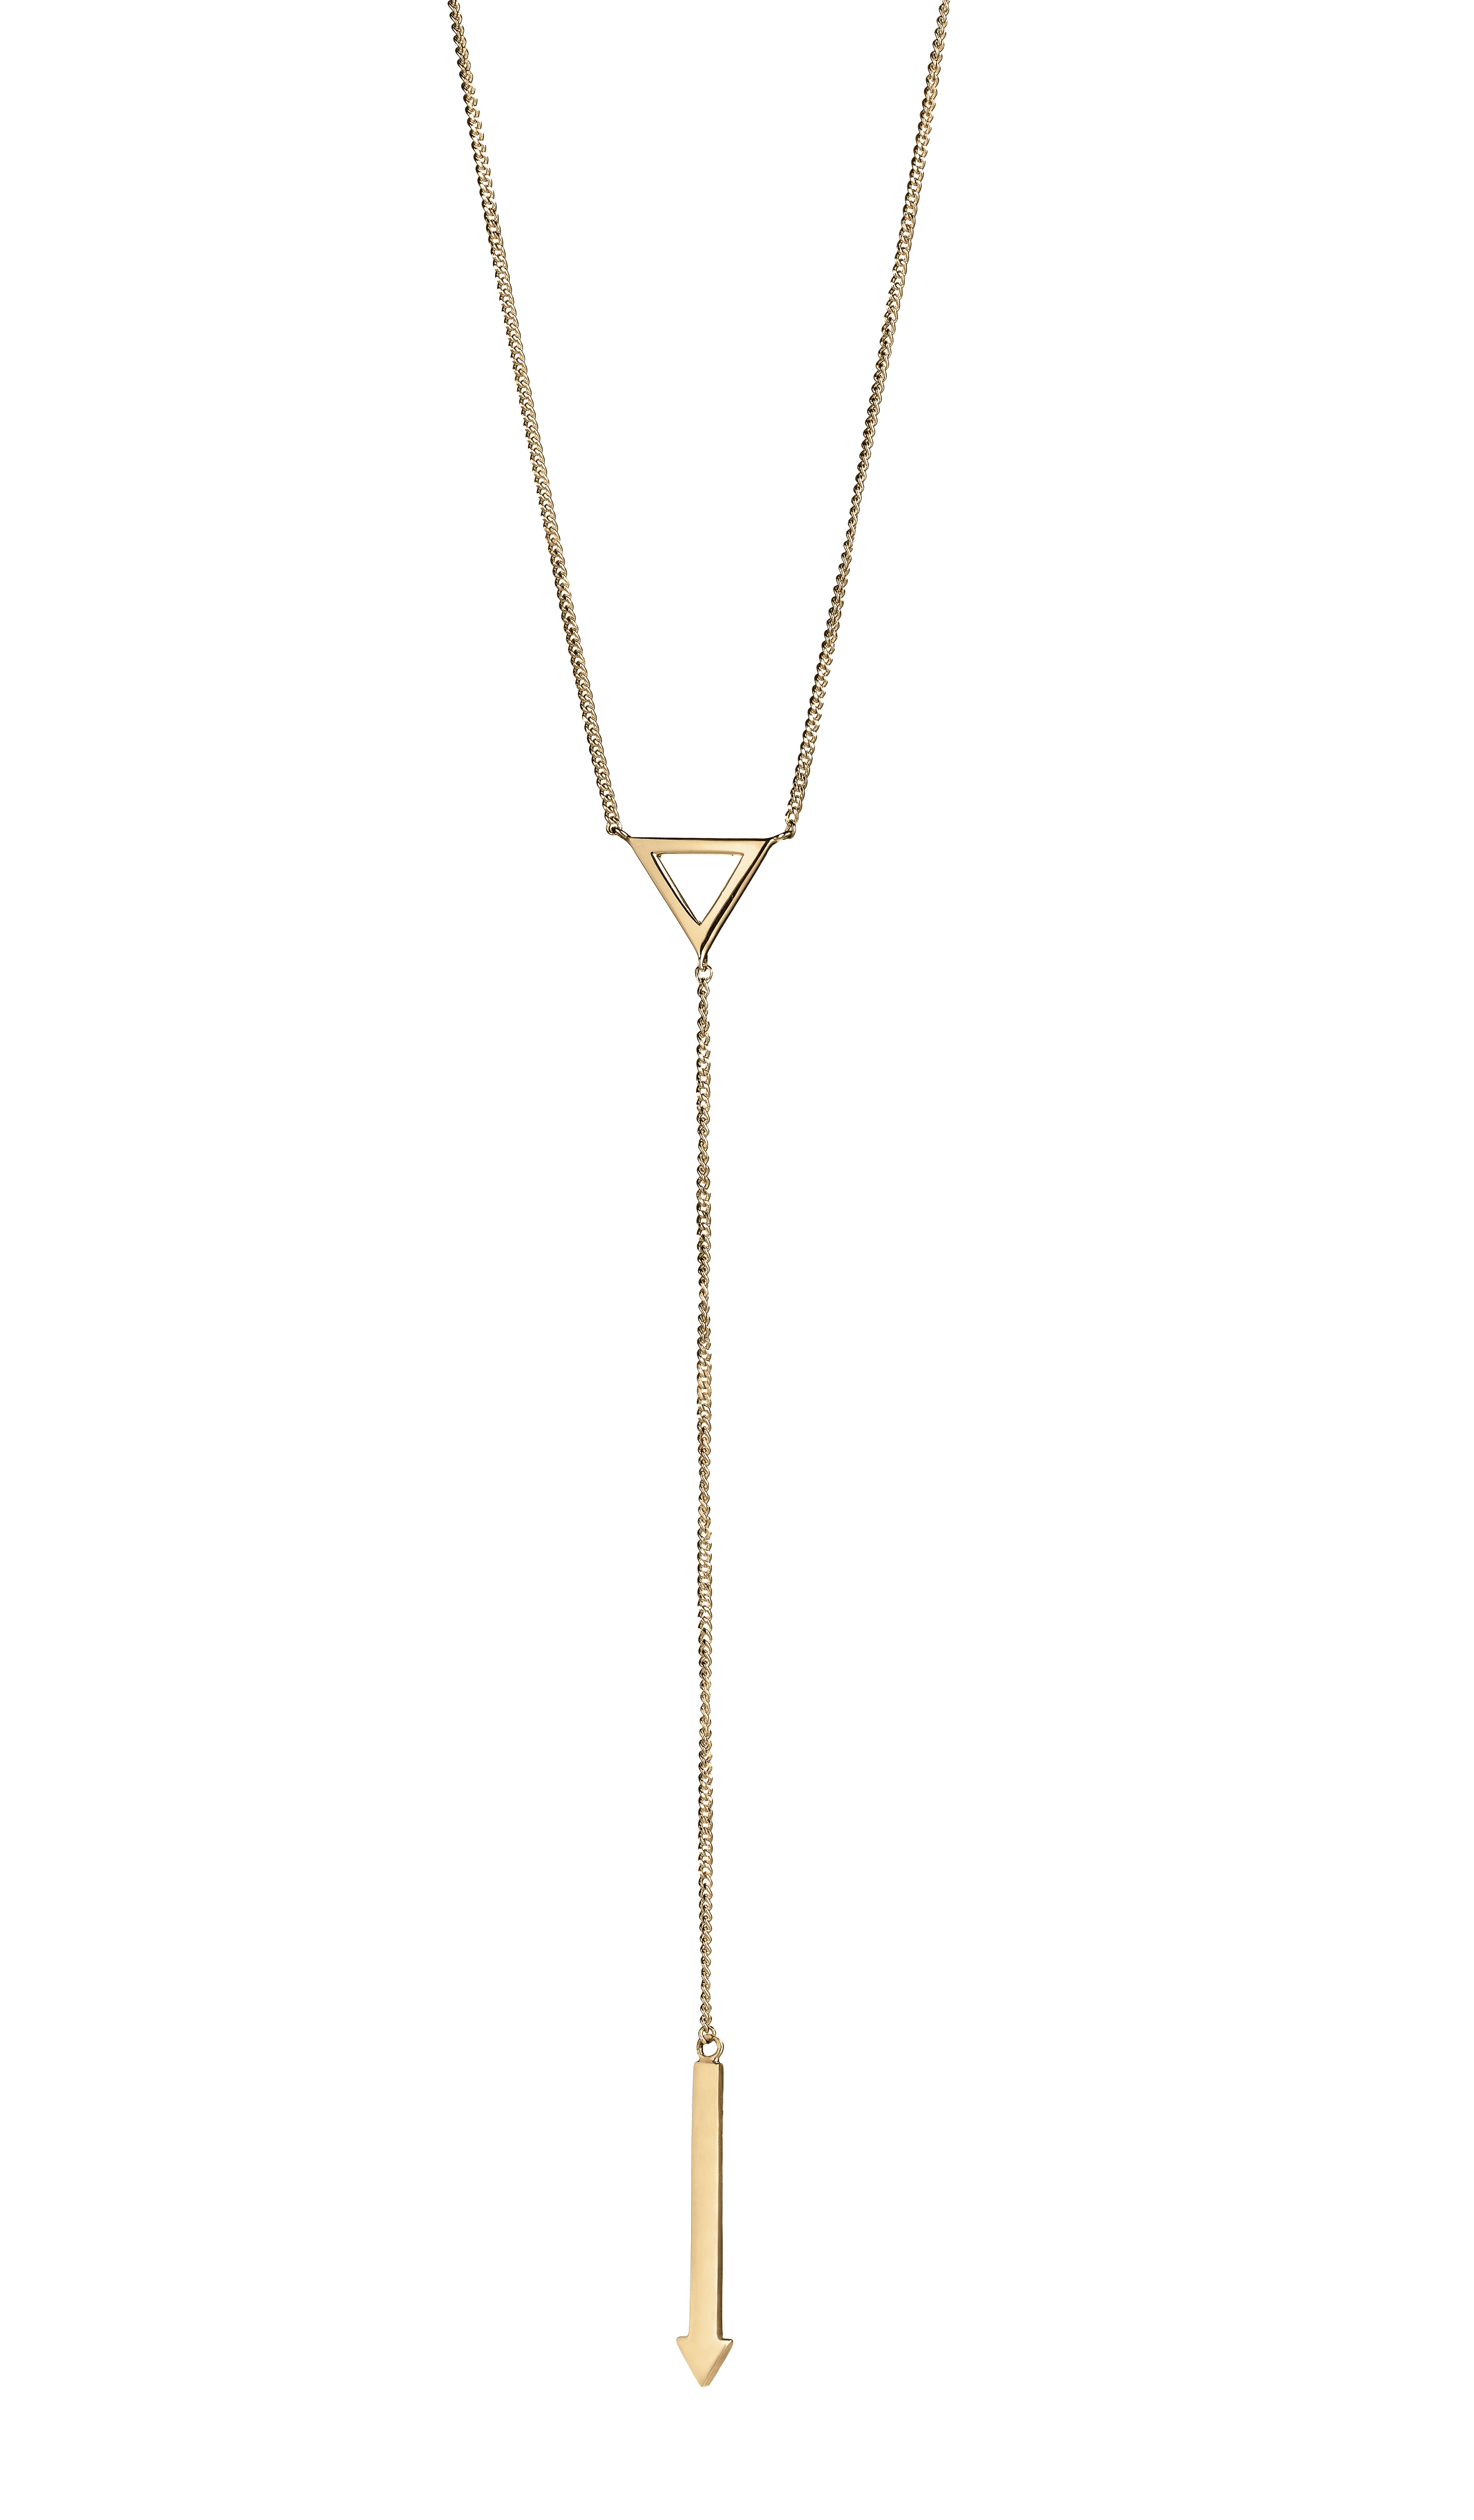 kw299_necklace_yg